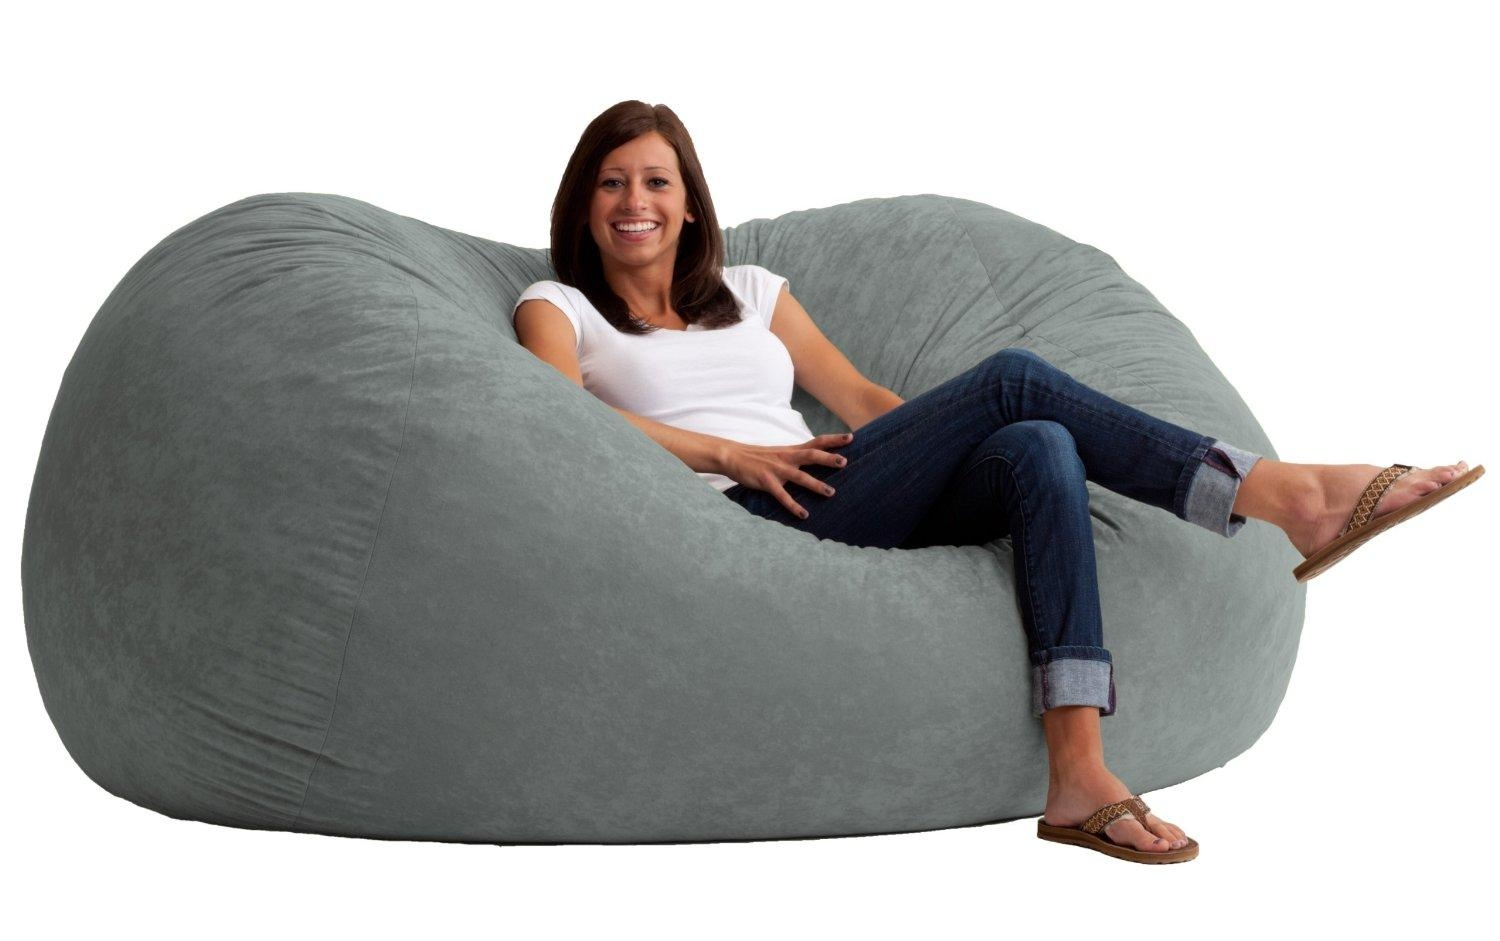 Big Joe Xl Comfort Suede Fuf | Discount Bean Bag/gaming Chairs Pertaining To Giant Bean Bag Chairs (Image 2 of 20)